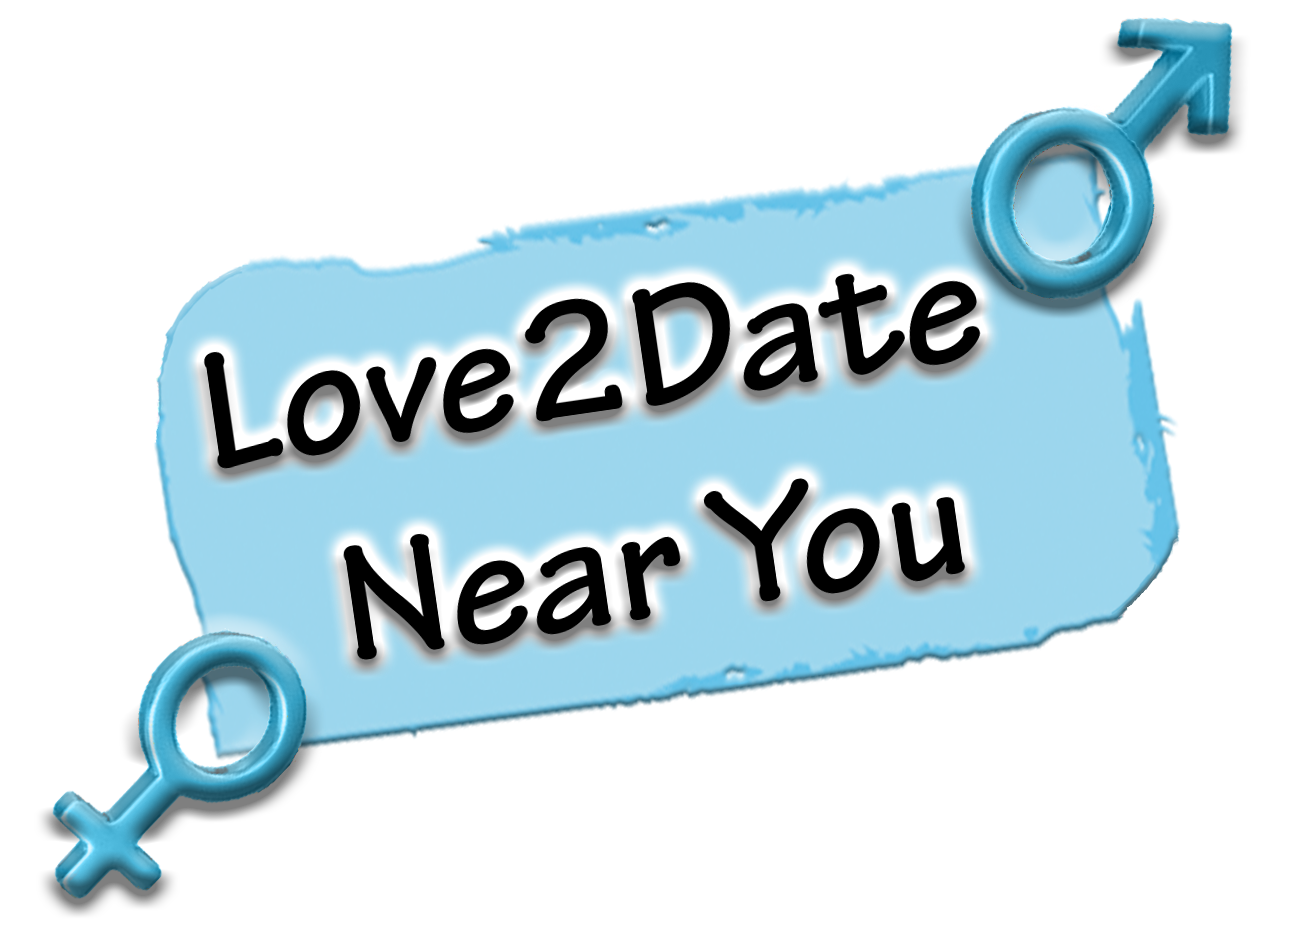 Love2Date Near You